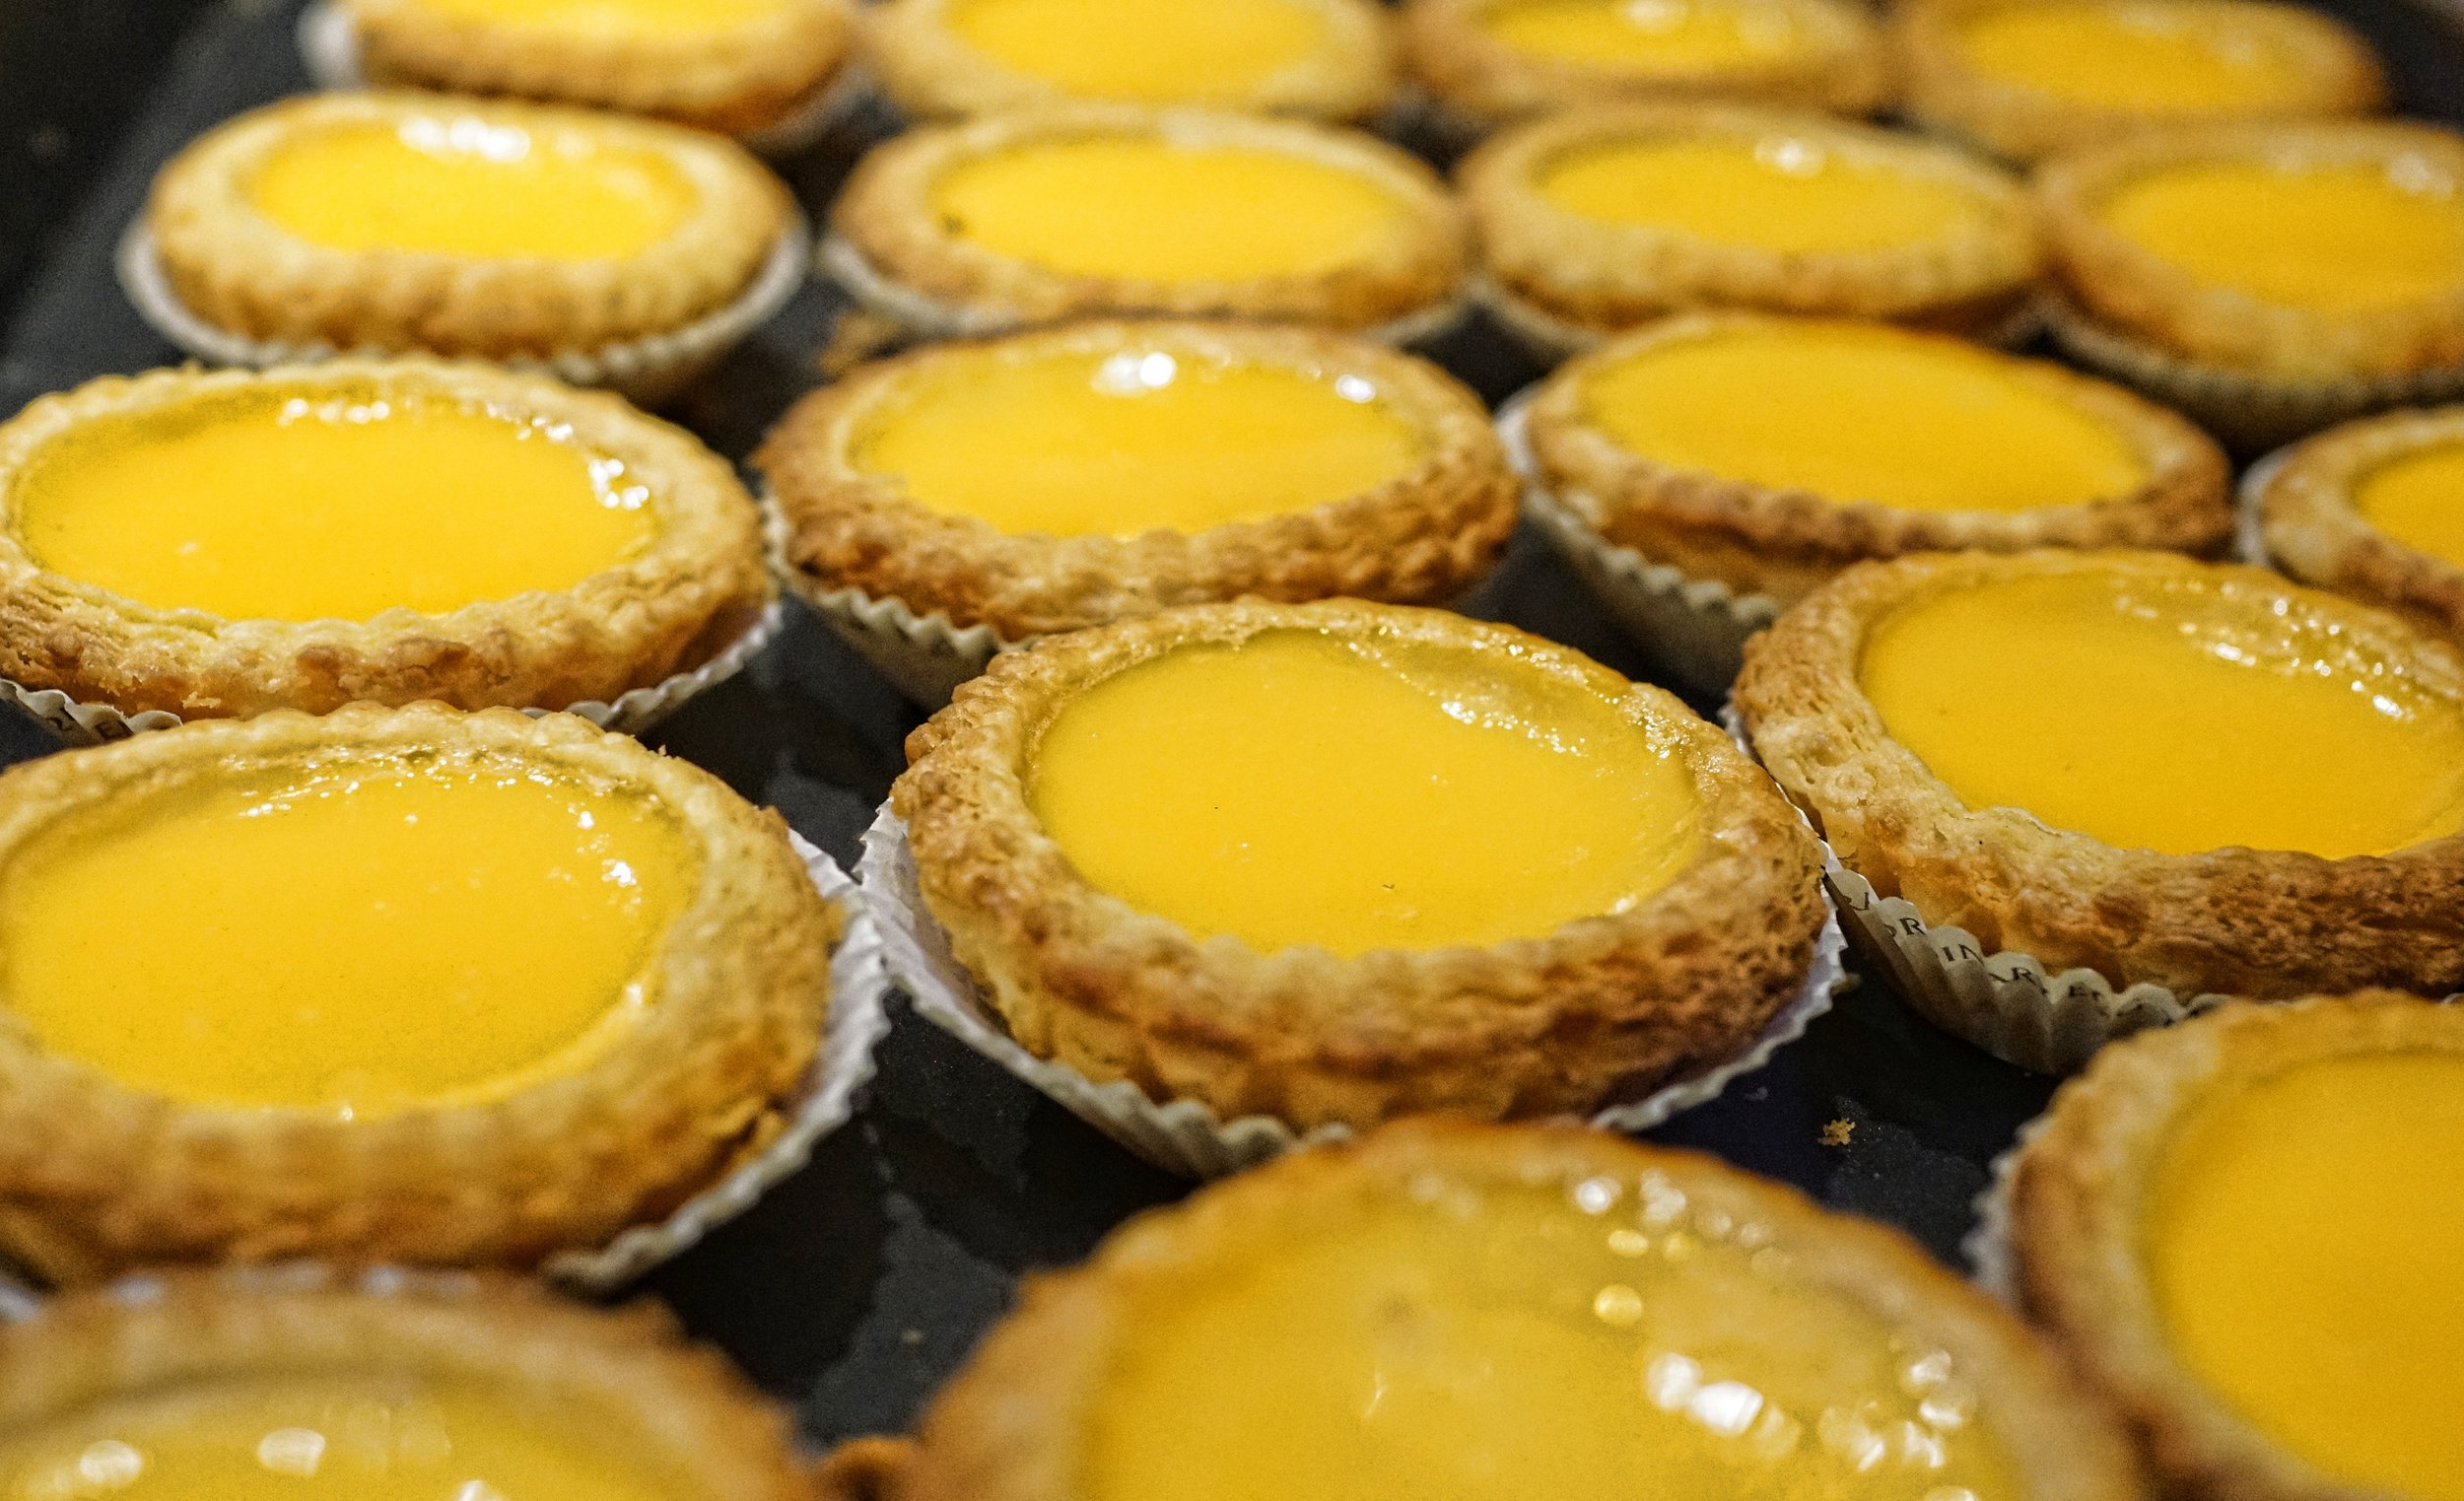 This is my Hong Kong | Egg Tarts and yes in my humble opinion, the best are from the Tai Cheong Bakery.